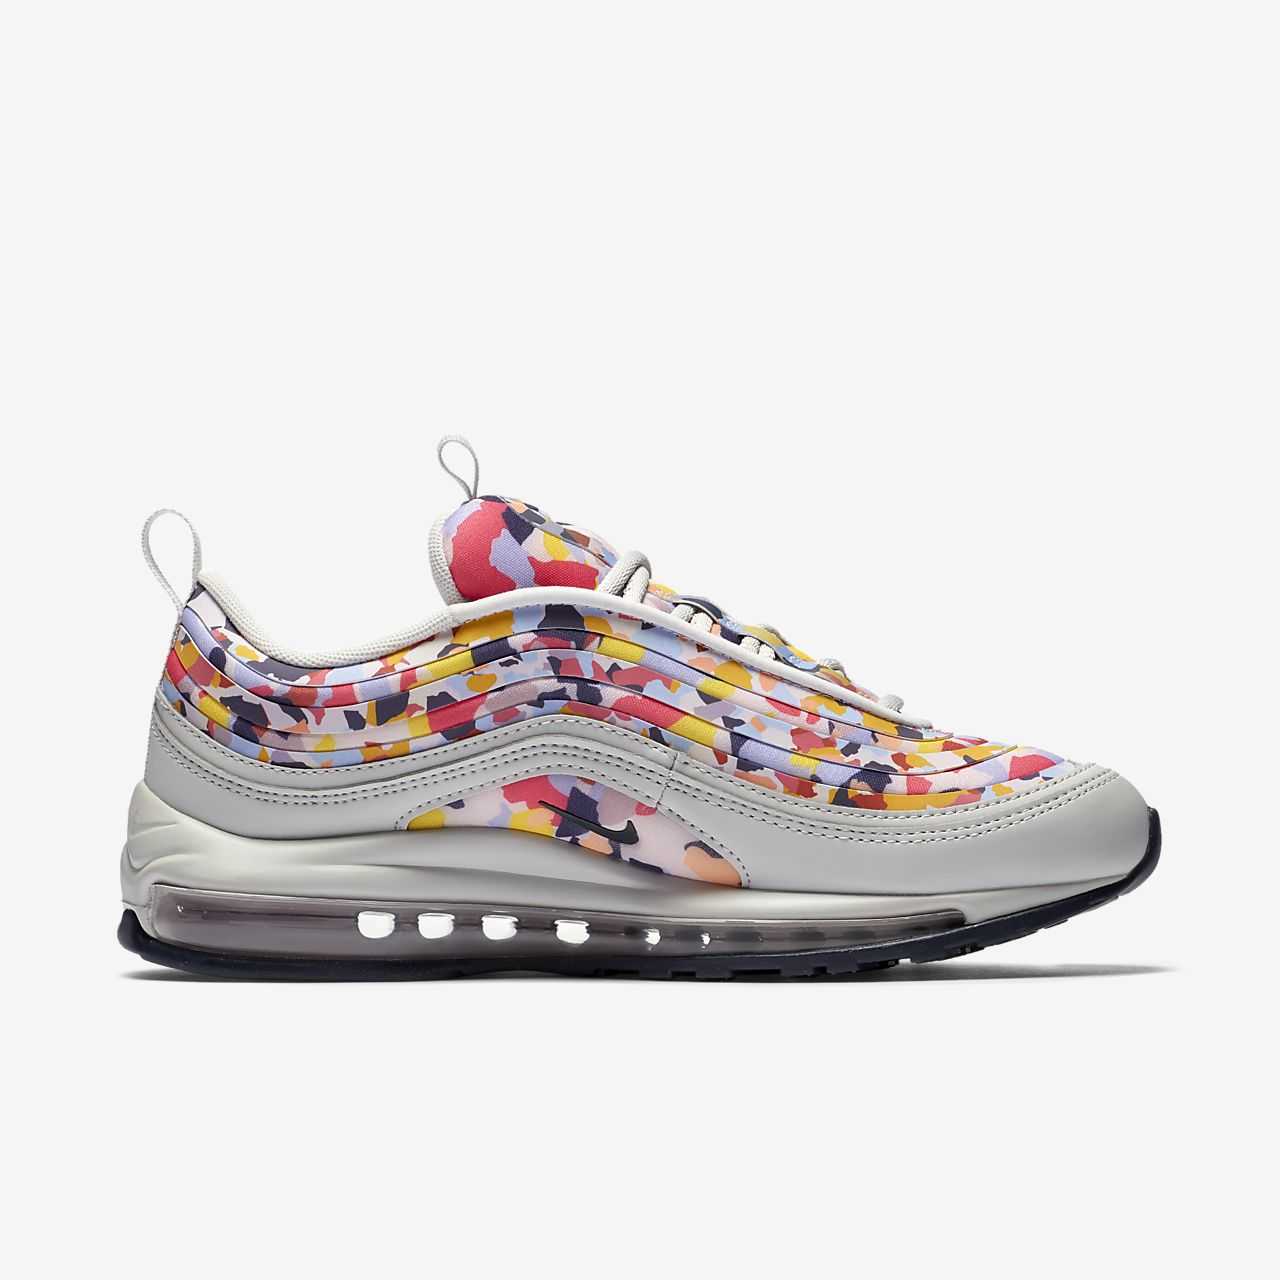 Nike Air Max 97 Trainers Footasylum